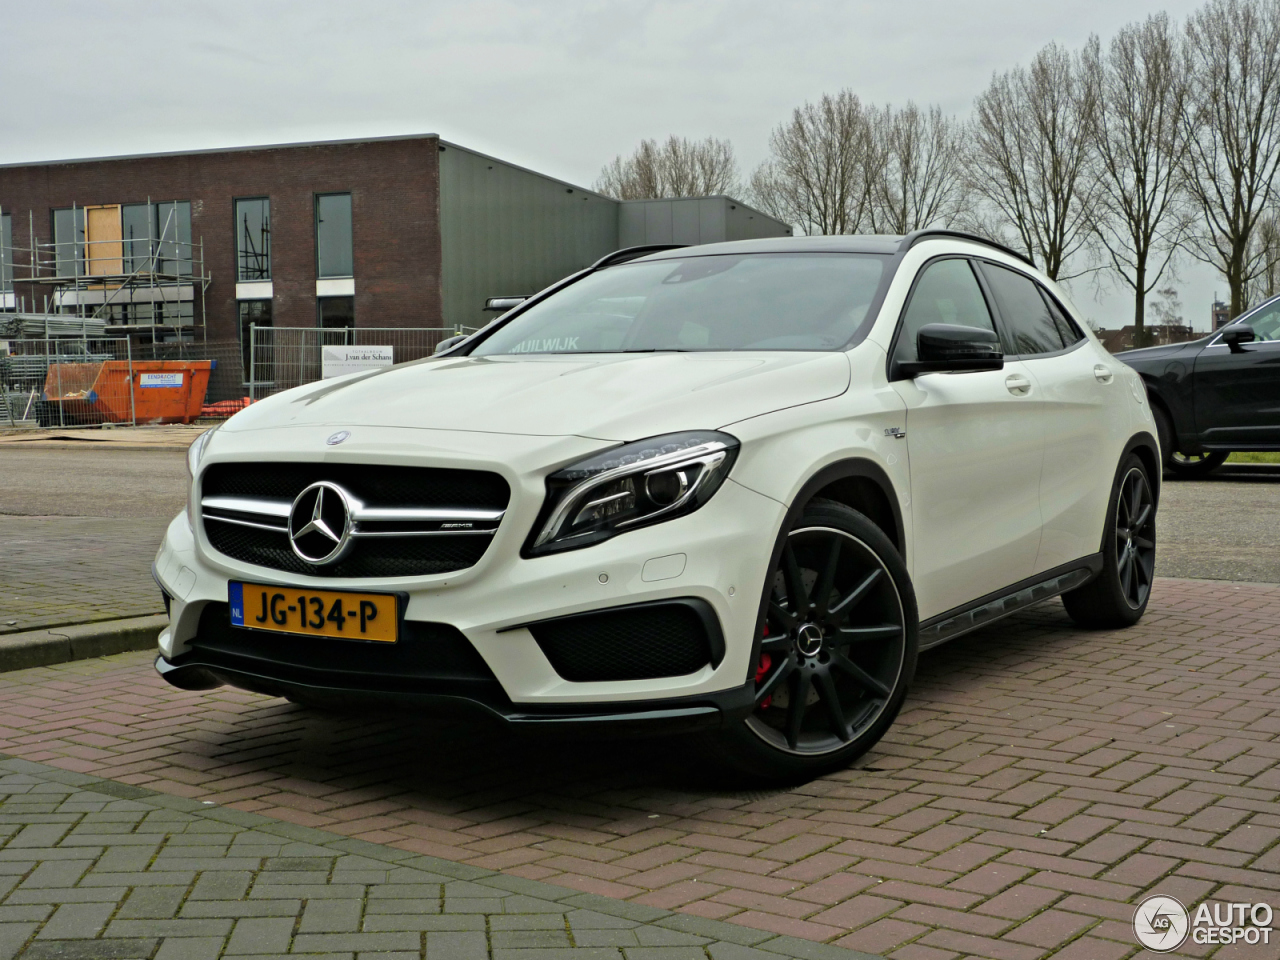 Mercedes benz gla 45 amg x156 21 march 2016 autogespot for Mercedes benz gla 45 amg price